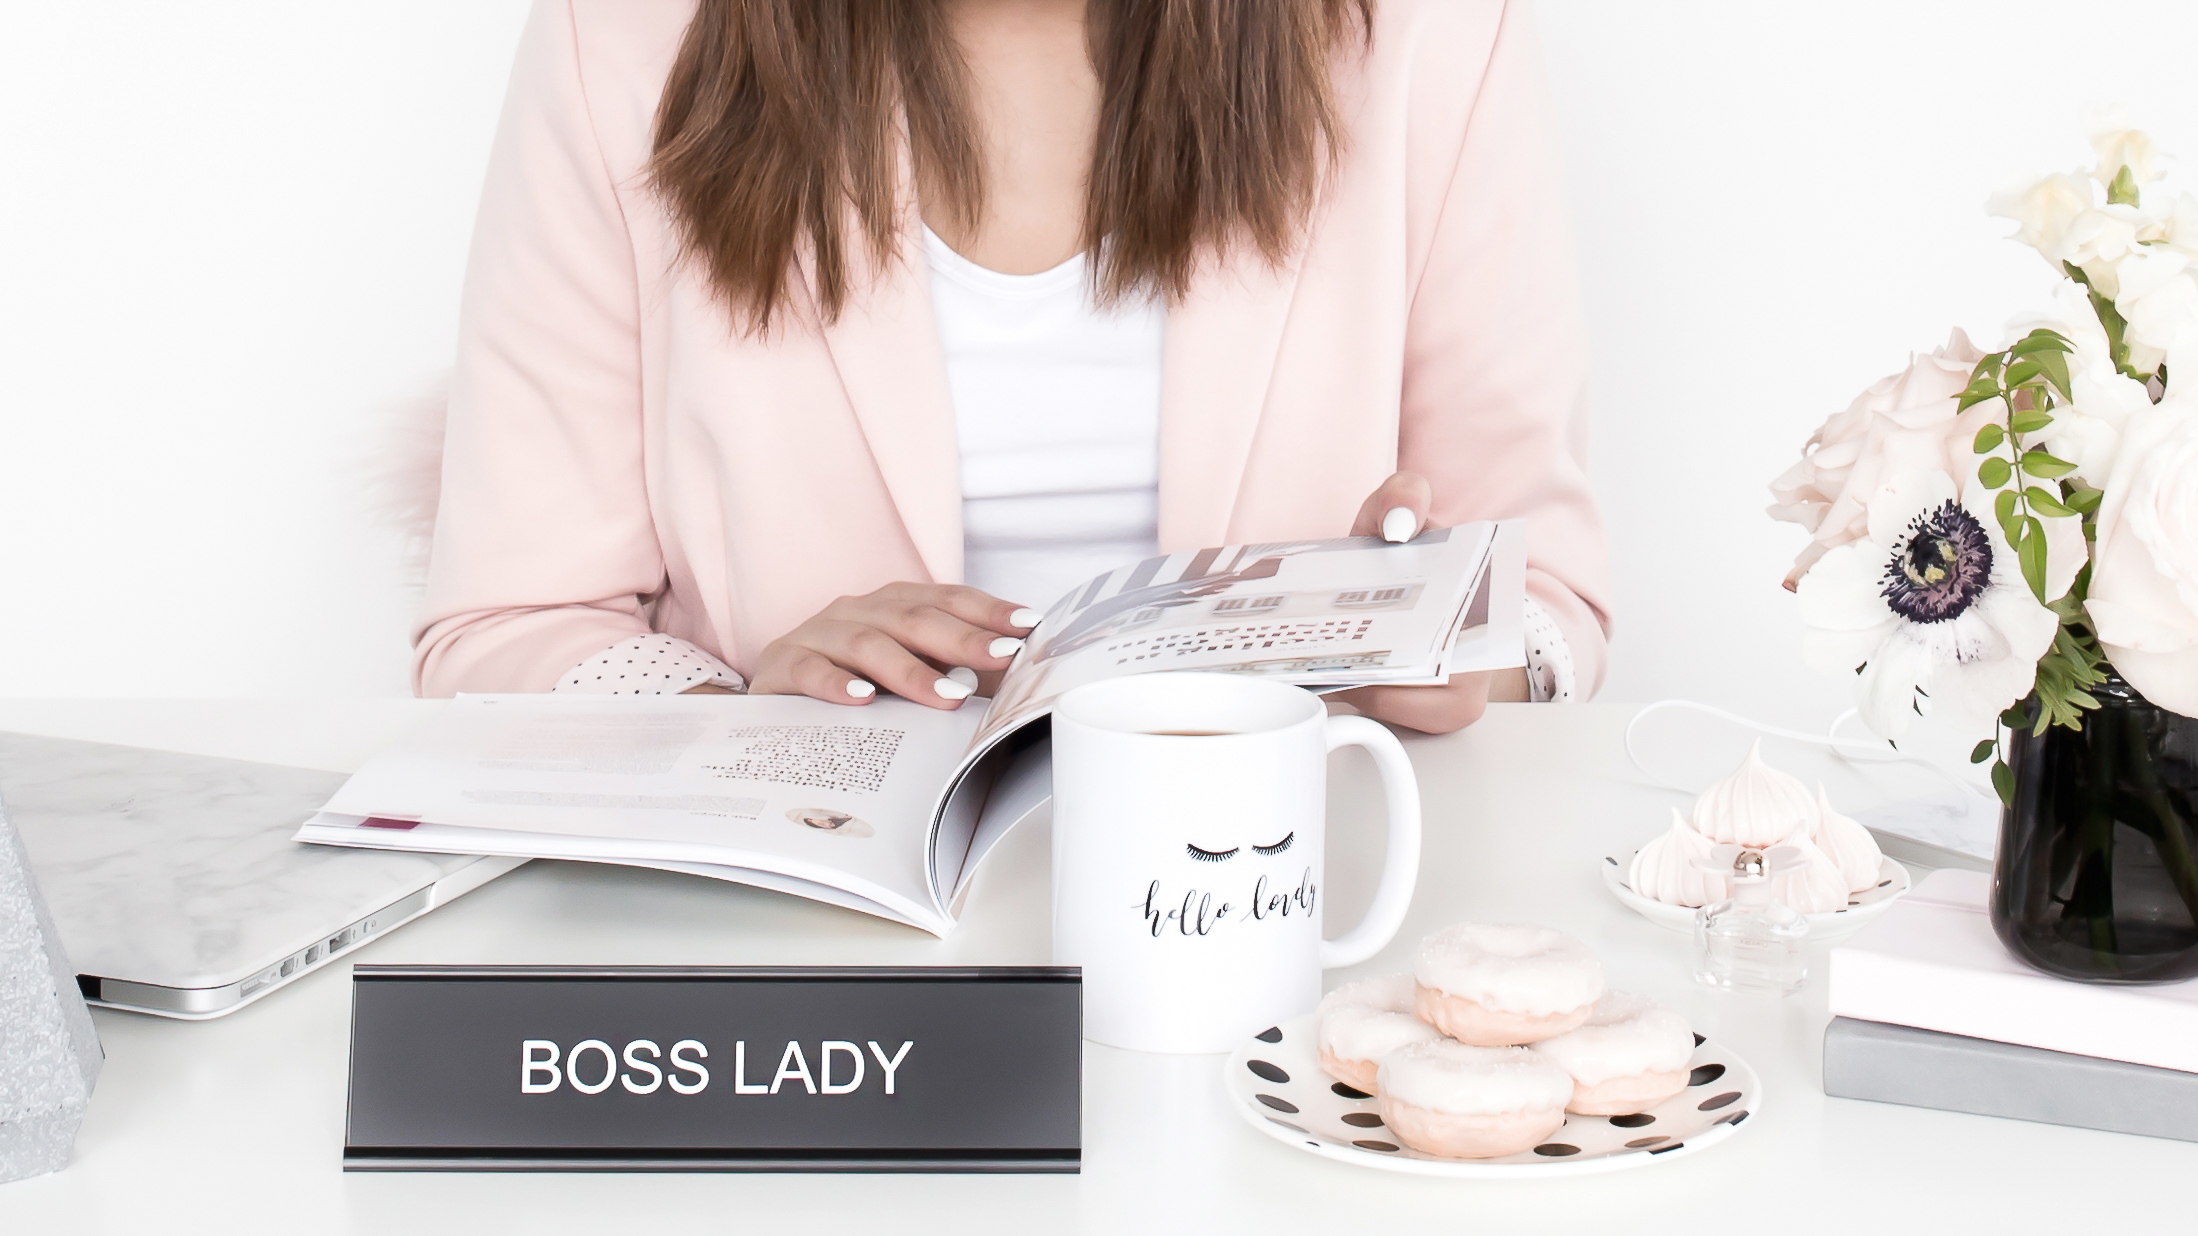 An entrepreneur in a pink blazer, looking over print material as her own boss today.